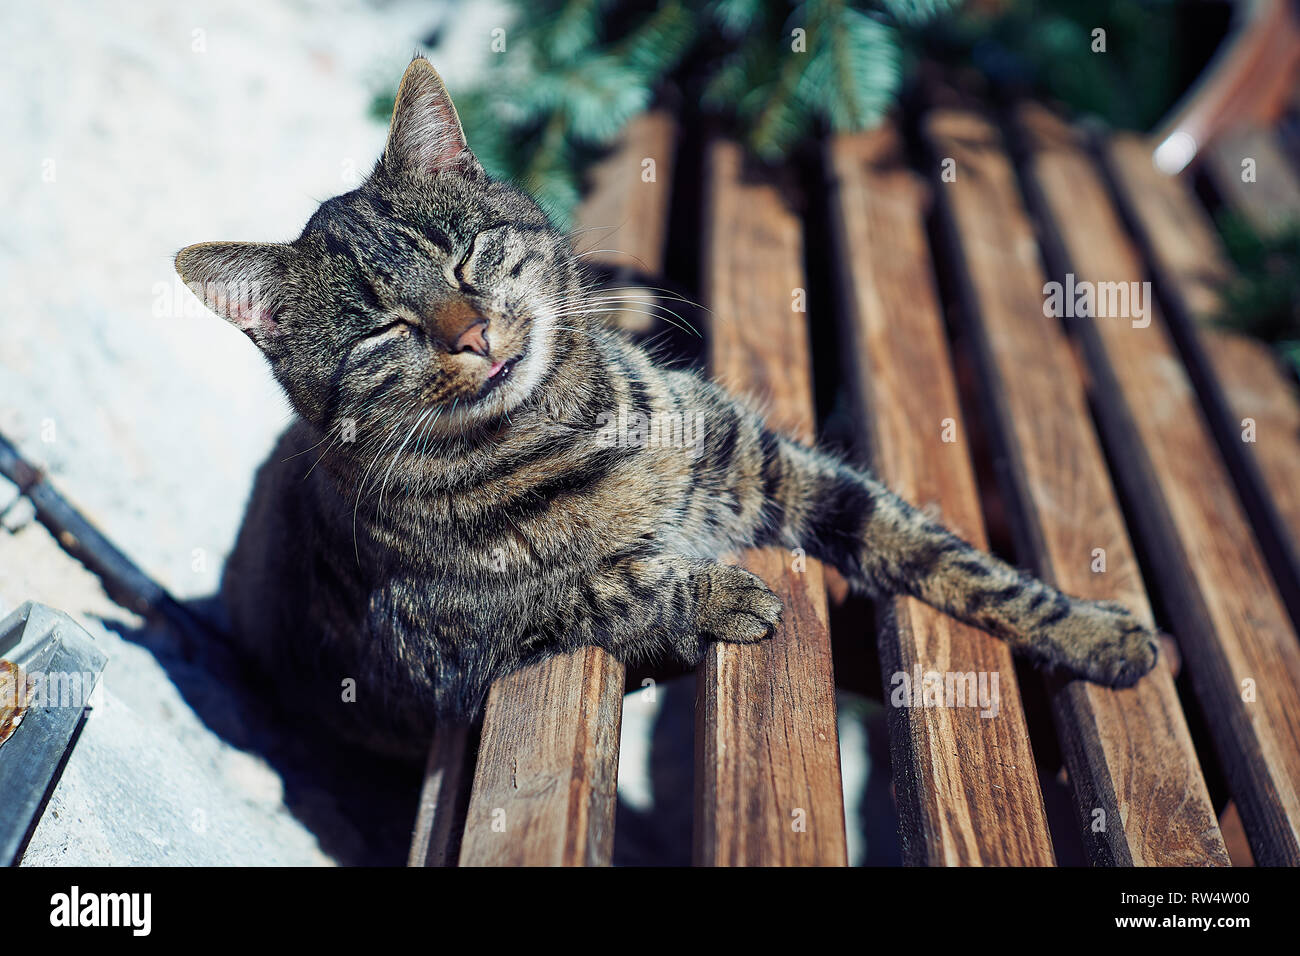 A gray cat sits on a wooden bench near the house.Cute gray cat sitting on a wooden bench outdoors Stock Photo